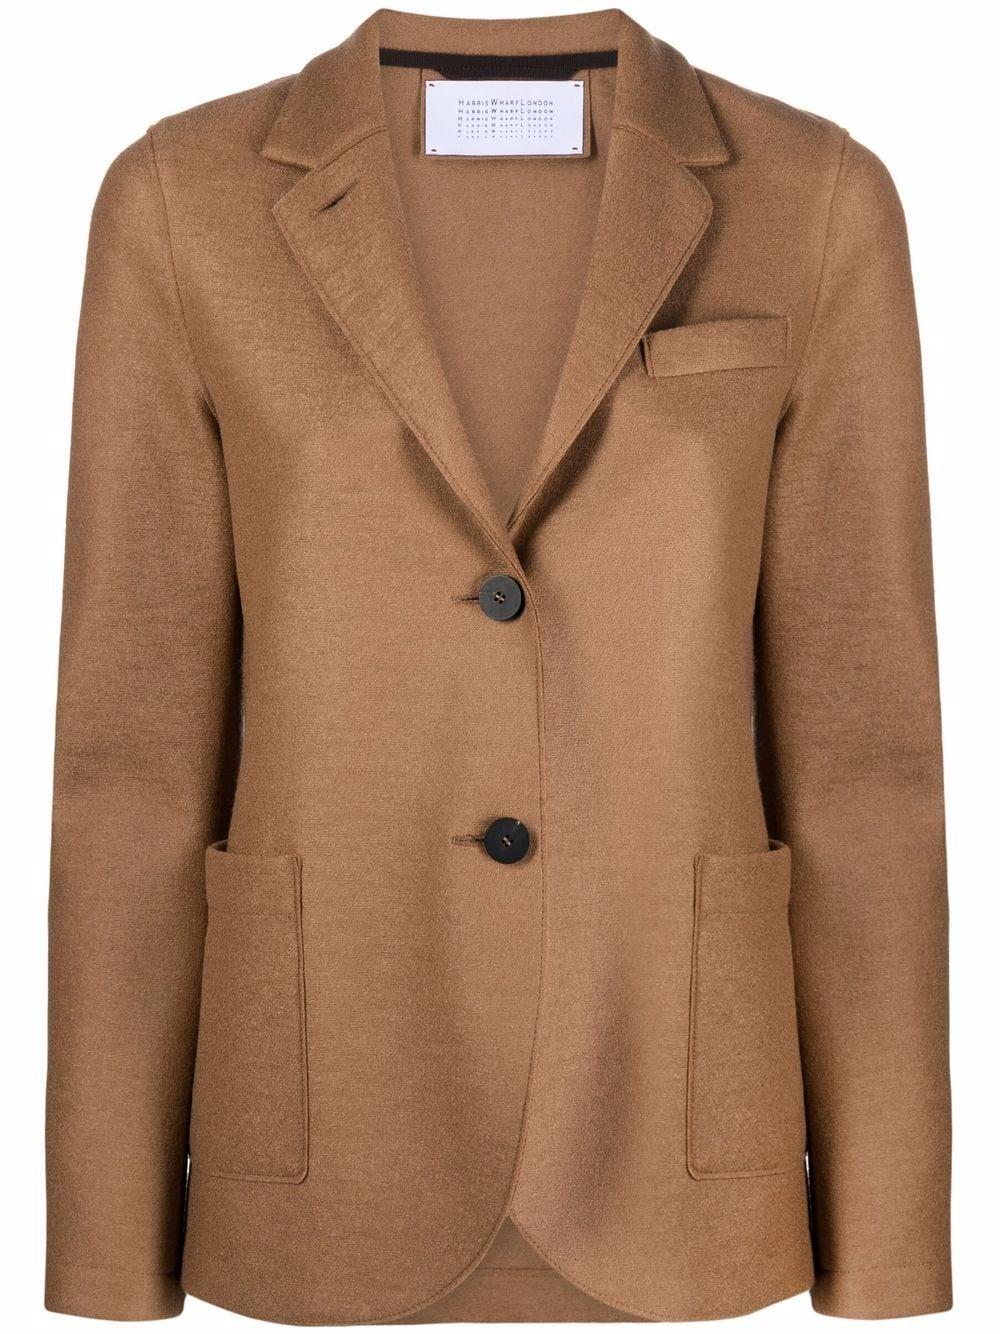 Picture of Harris Wharf London | Single-Breasted Wool Blazer